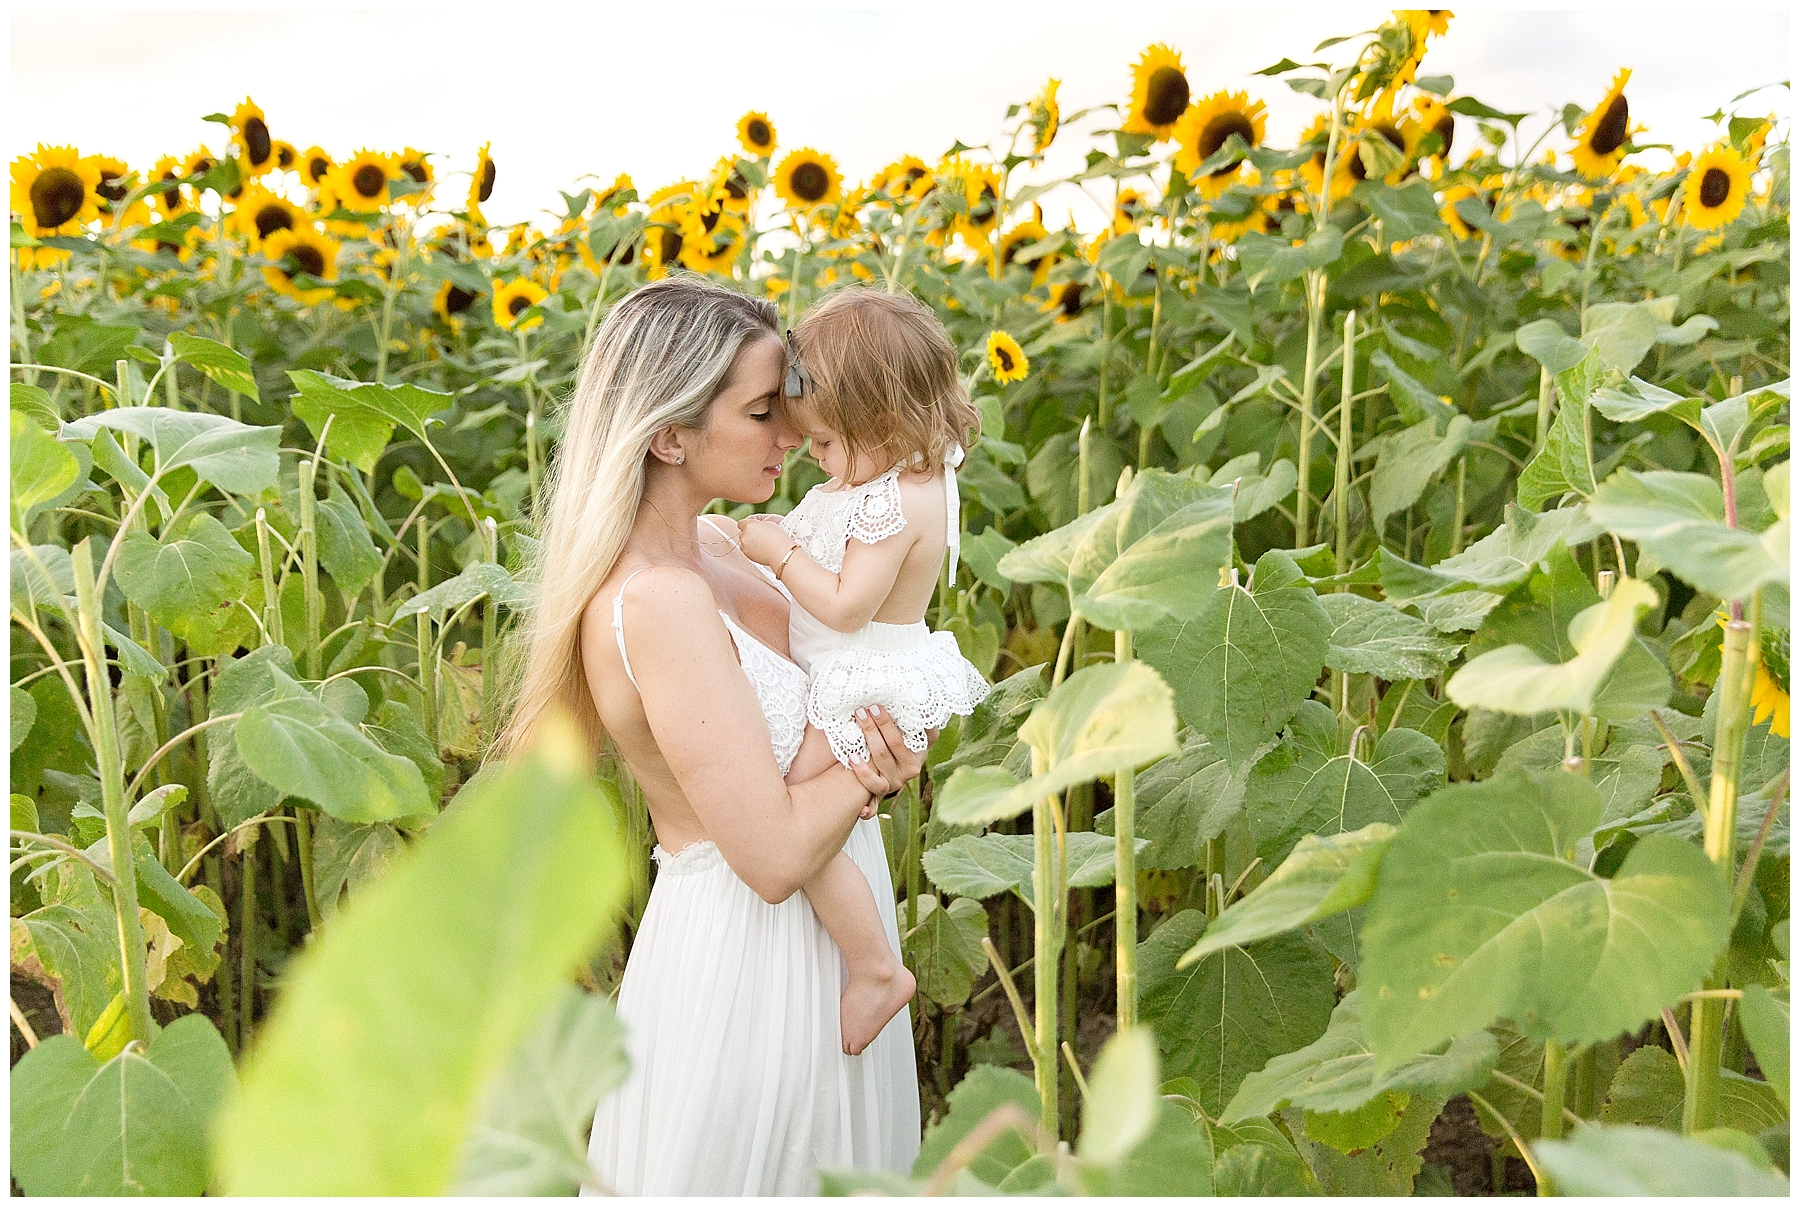 Mommy and me photoshoot in sunflower field miami florida